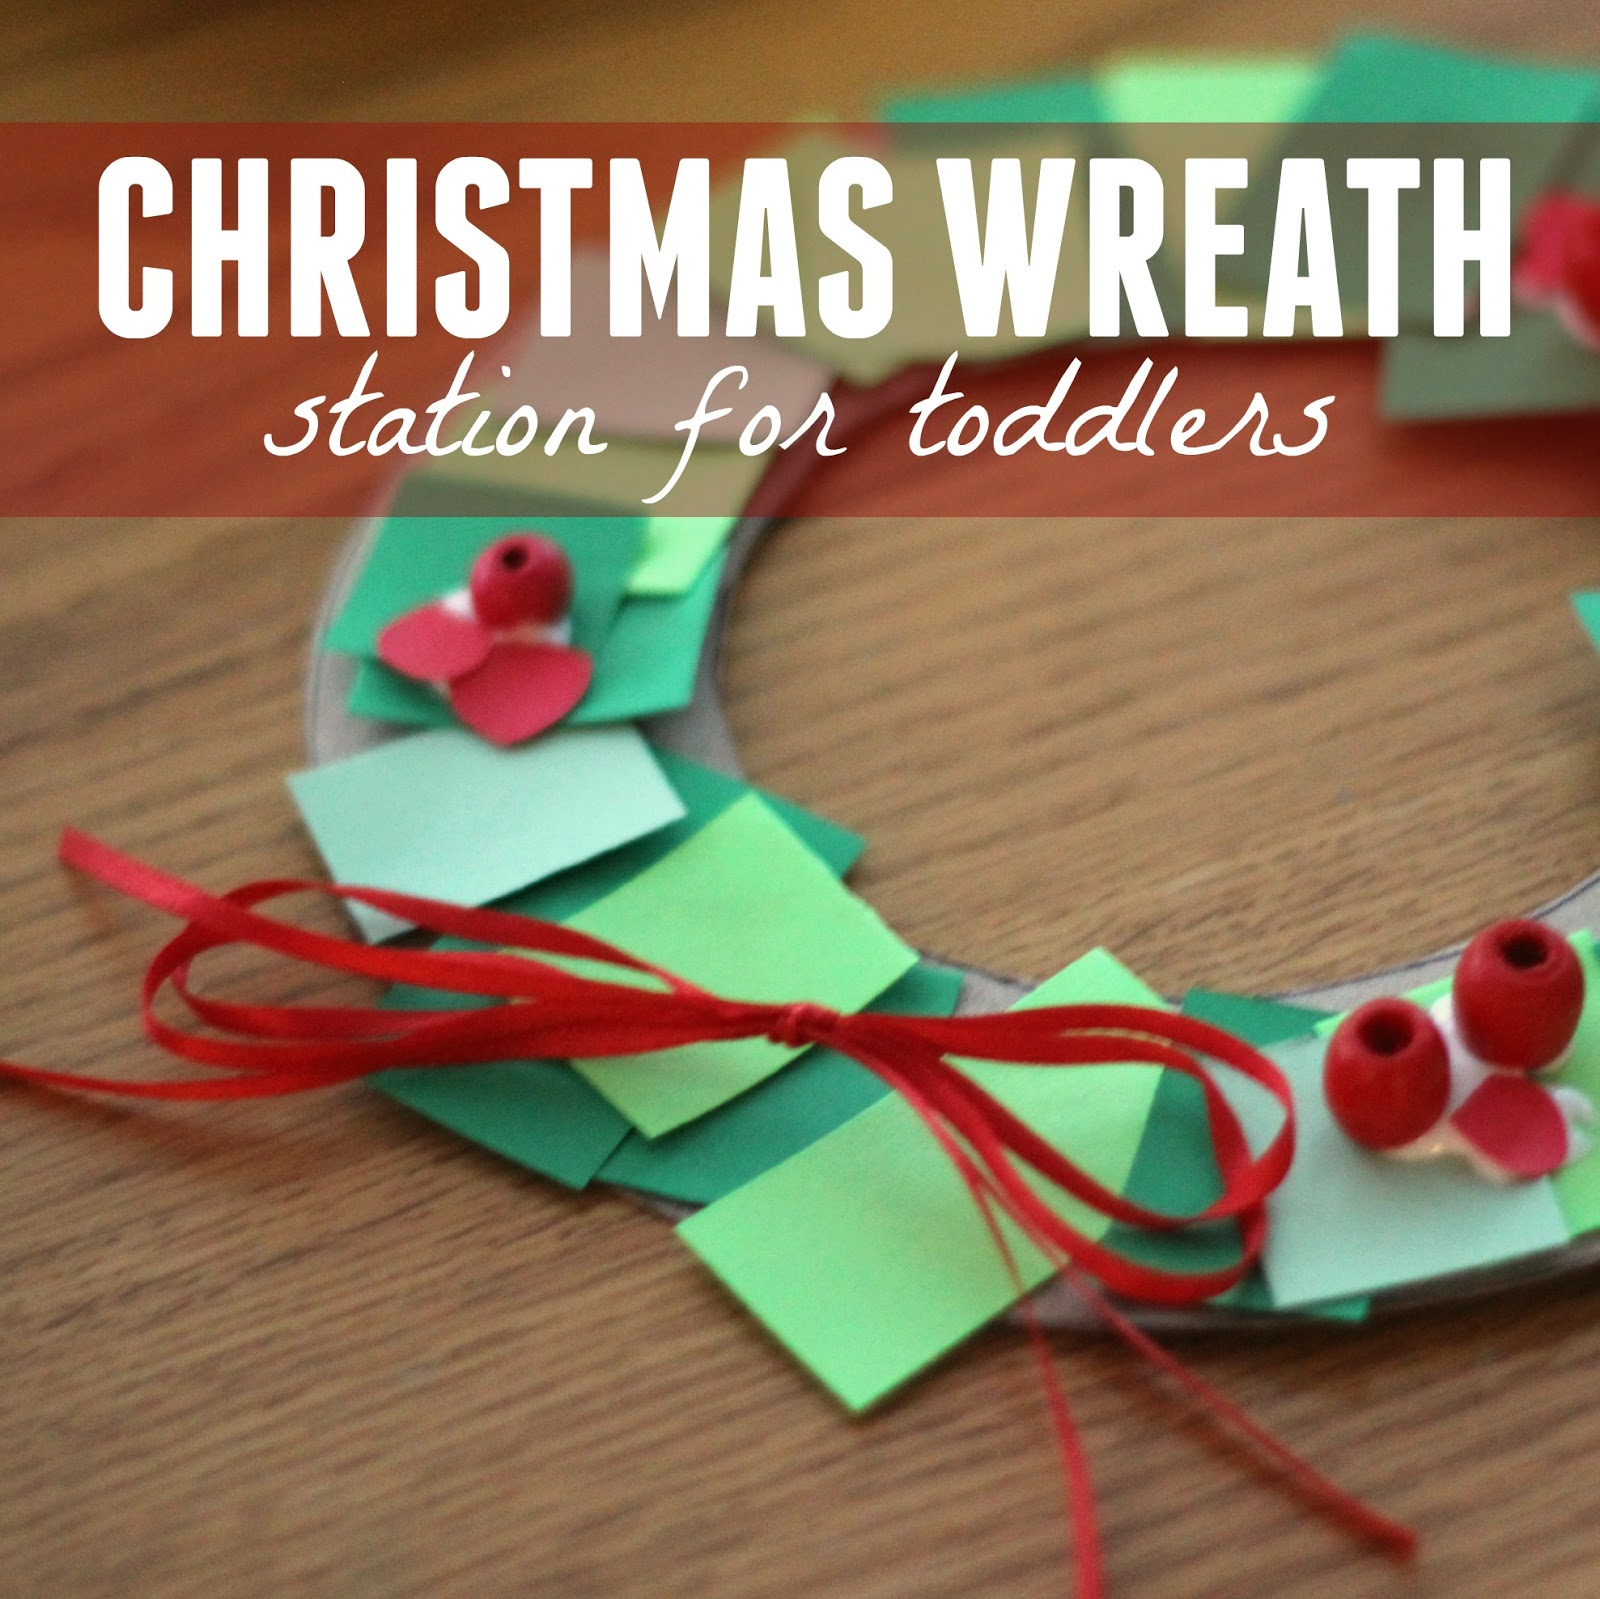 Paper Christmas Wreath Ideas.Toddler Approved Toddler Christmas Wreath Making Station